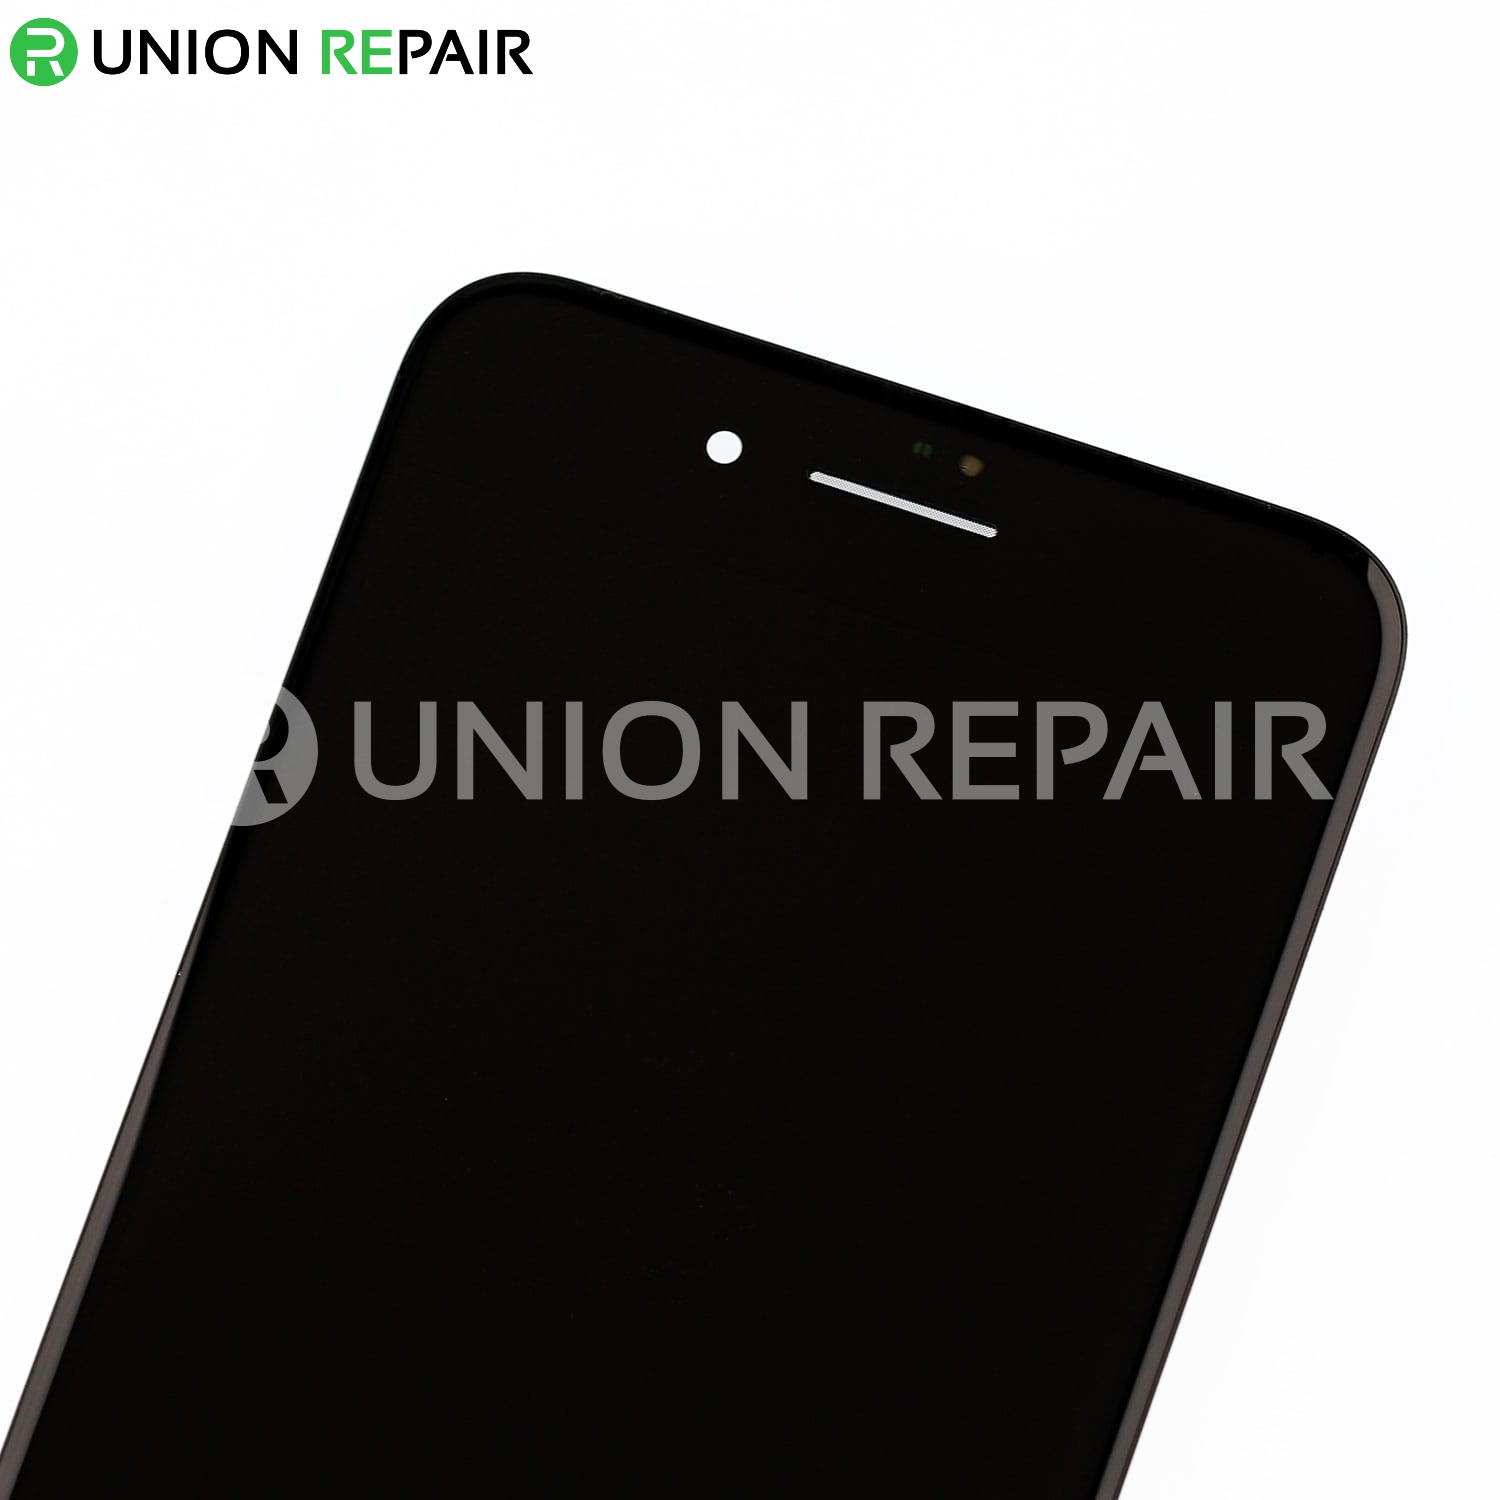 Replacement For iPhone 8 Plus LCD Screen and Digitizer Assembly - Black